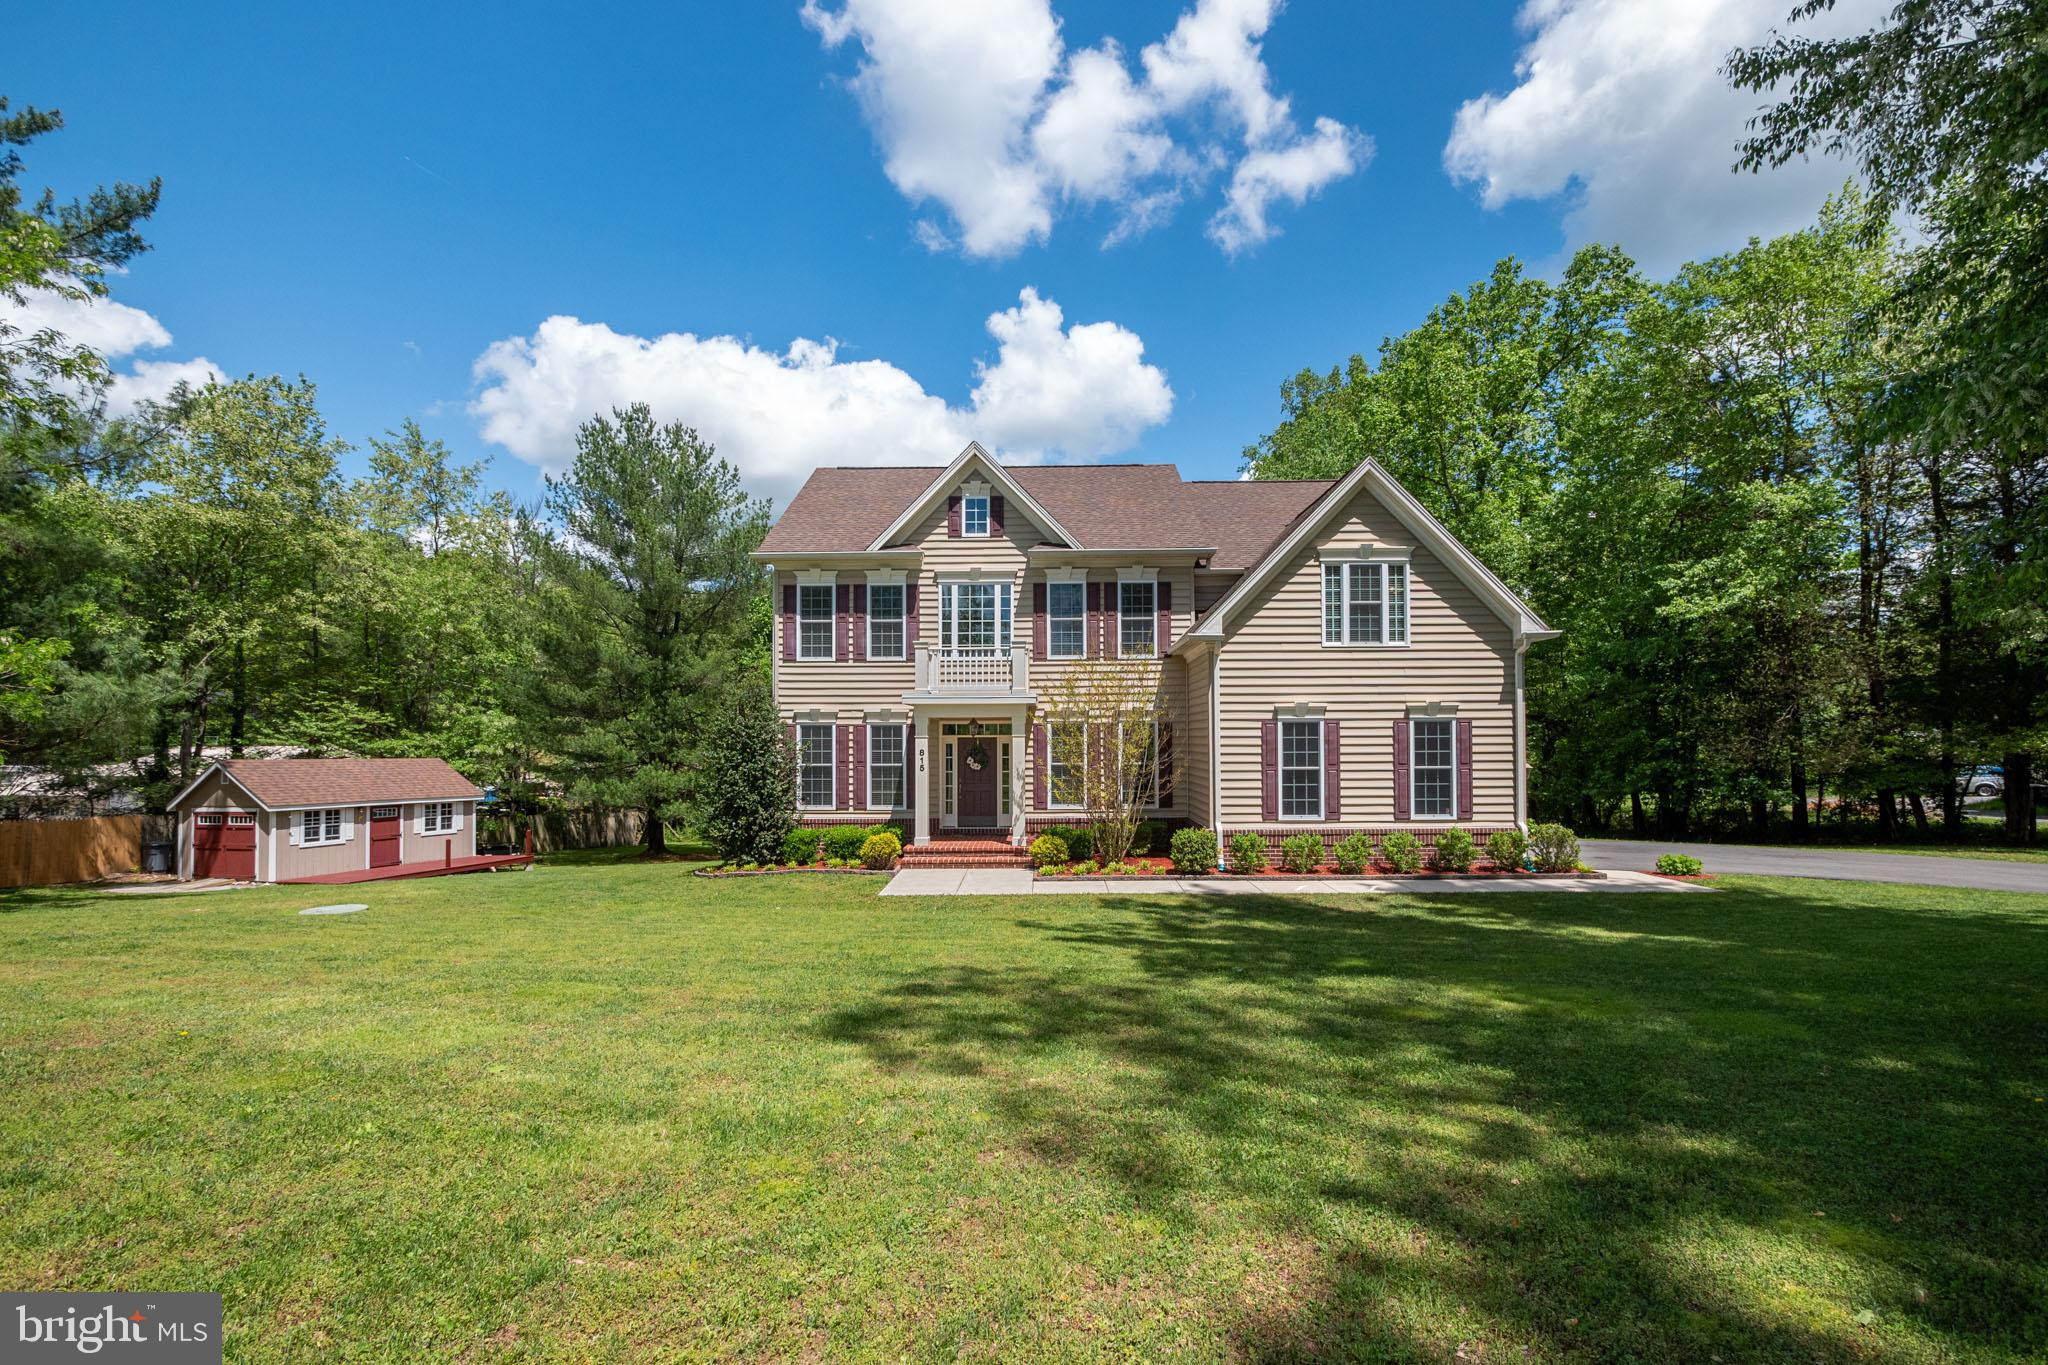 815 NORWOOD ROAD, SILVER SPRING, MD 20905